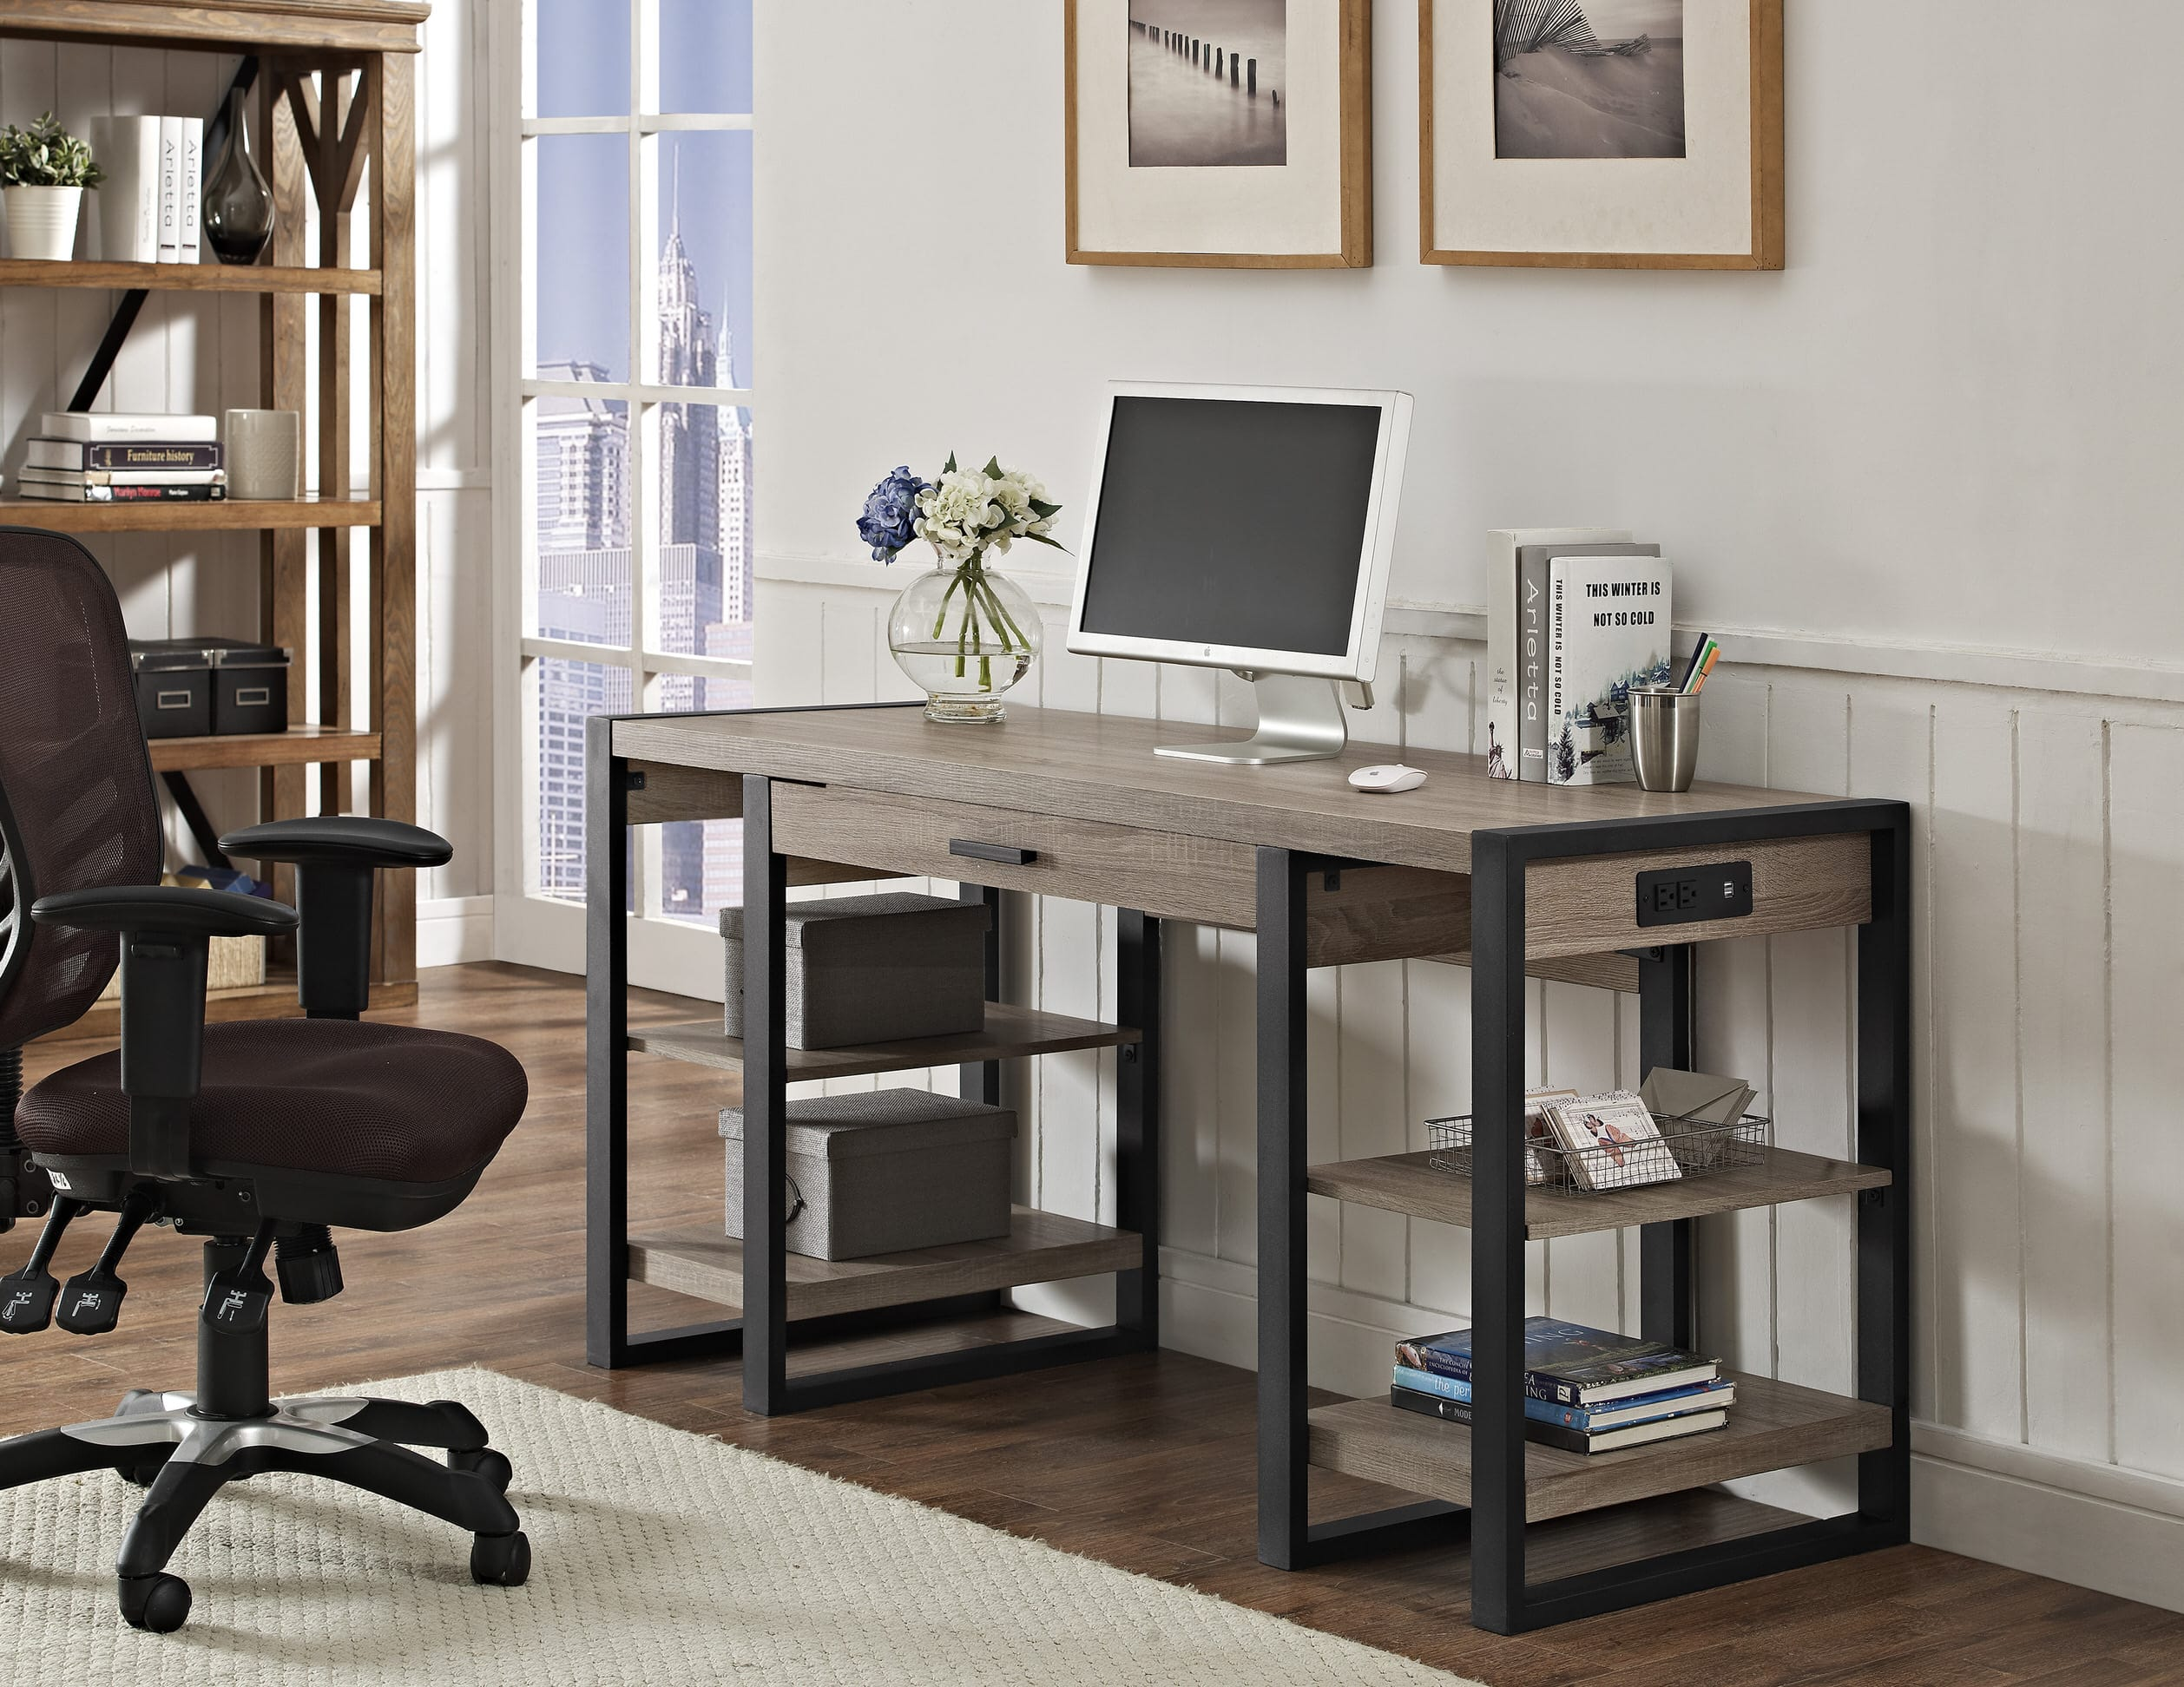 Urban blend 60 inch computer storage desk driftwood black by walker edison walker